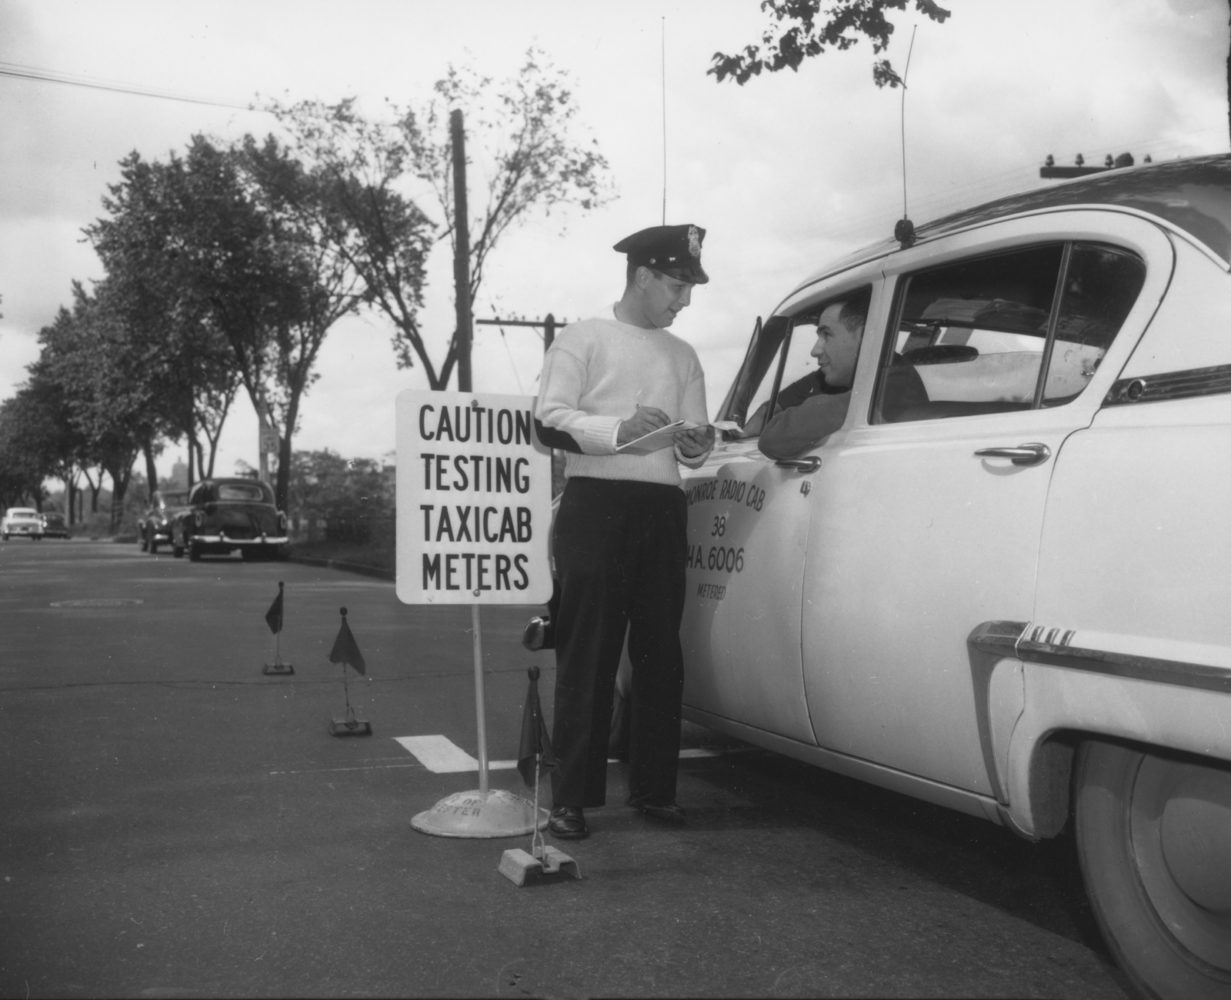 Taxi cab testing - photo from City of Rochester